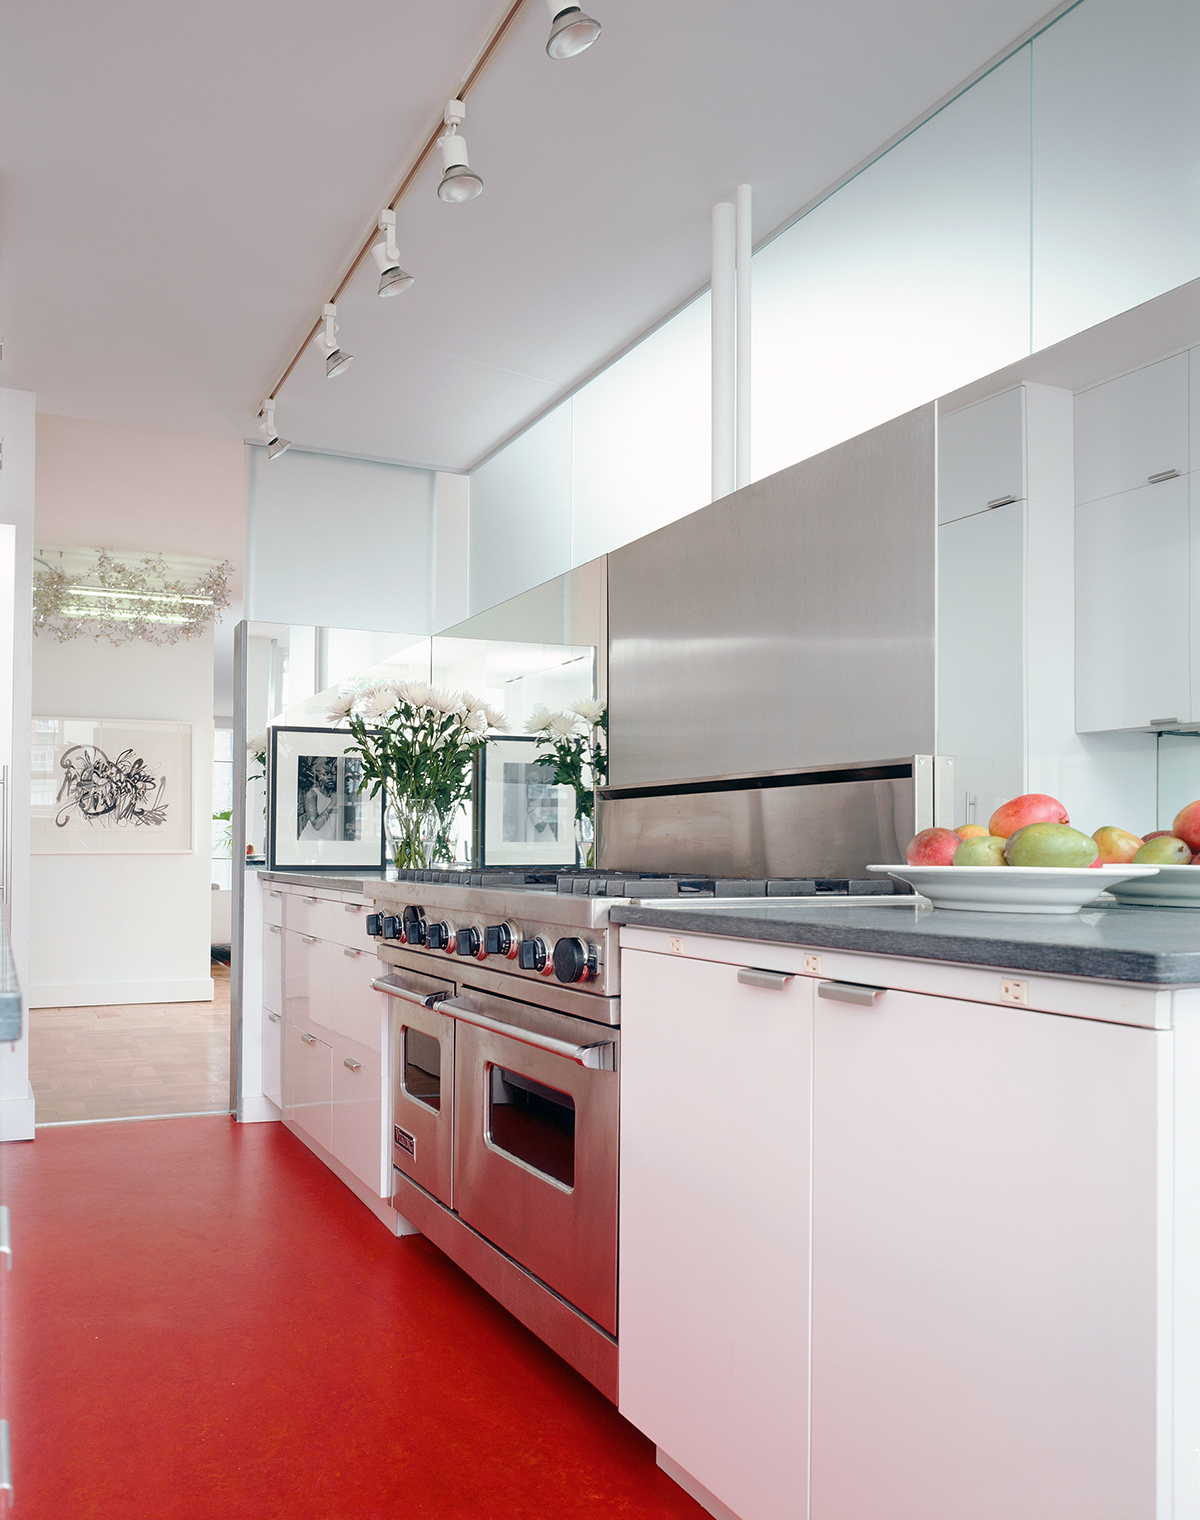 greenwich village apartment kitchen